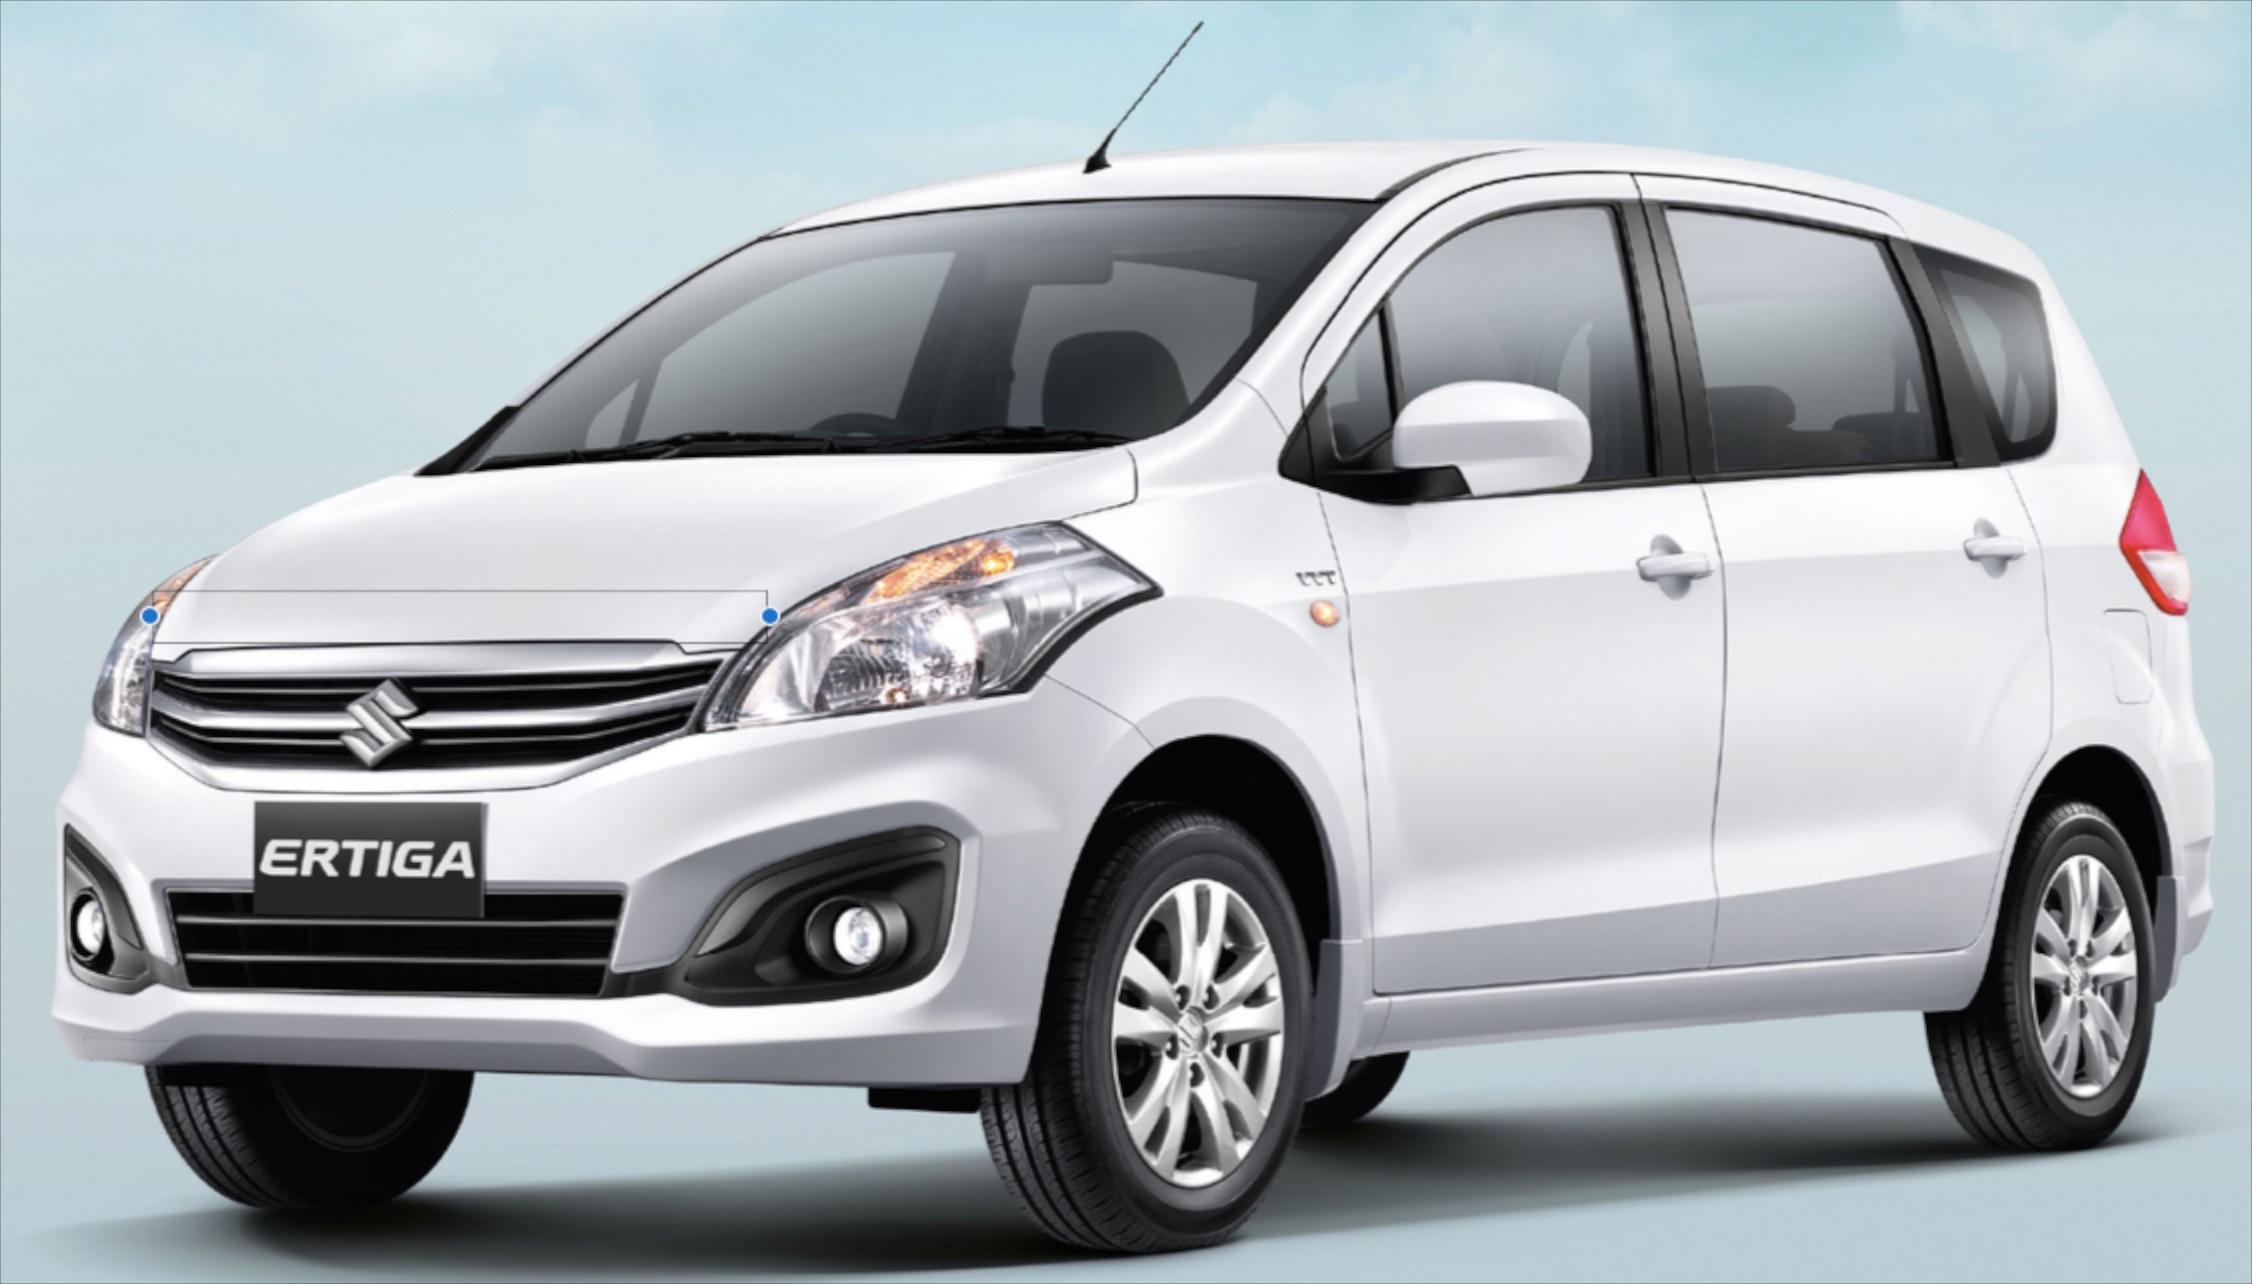 Hybrid Cars For Sale >> Suzuki Ertiga Diesel to debut in Indonesia early 2017